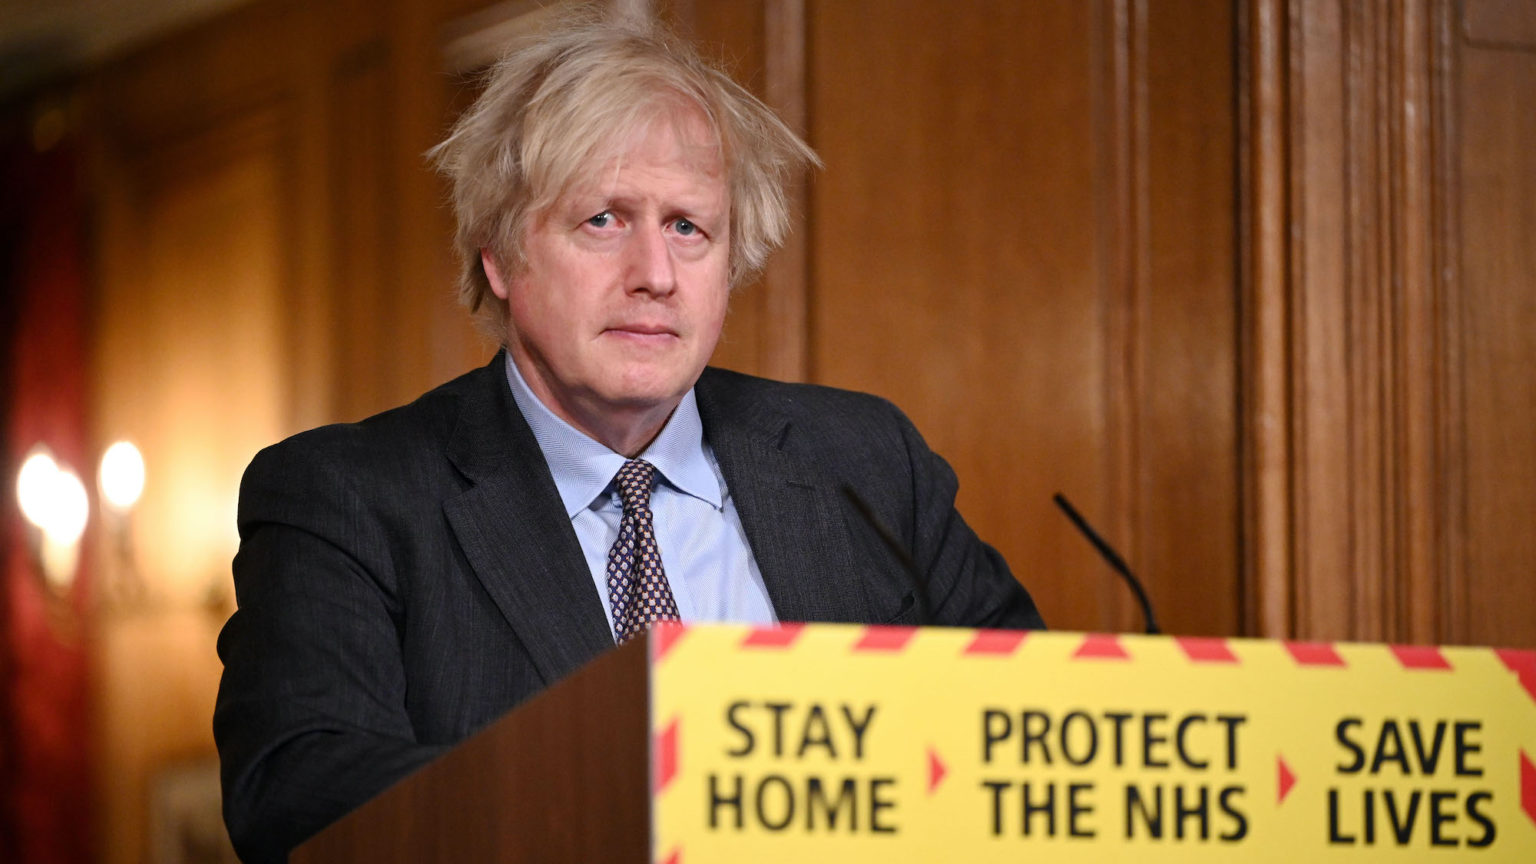 The problem with Boris's slow march to freedom